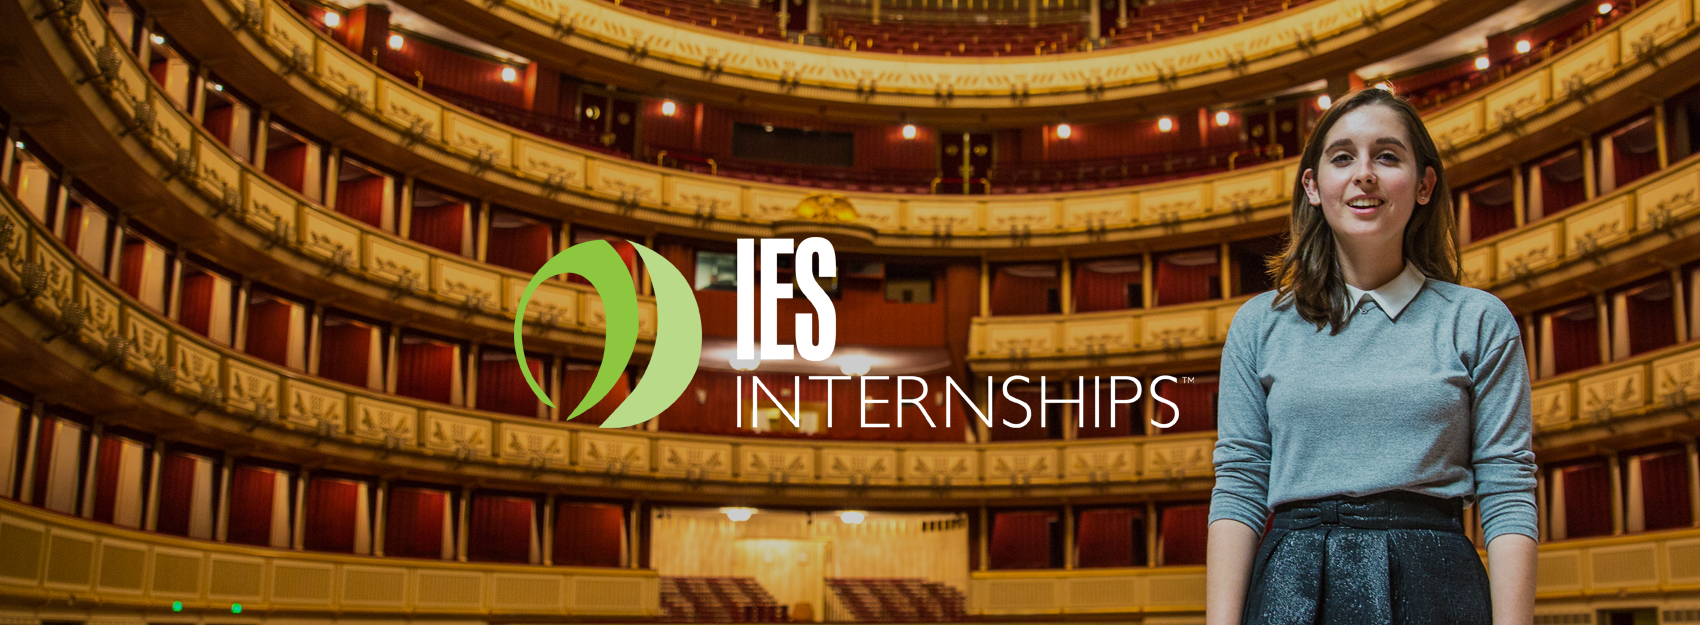 IES Internships logo centered over photo of Female Intern in Vienna Opera House